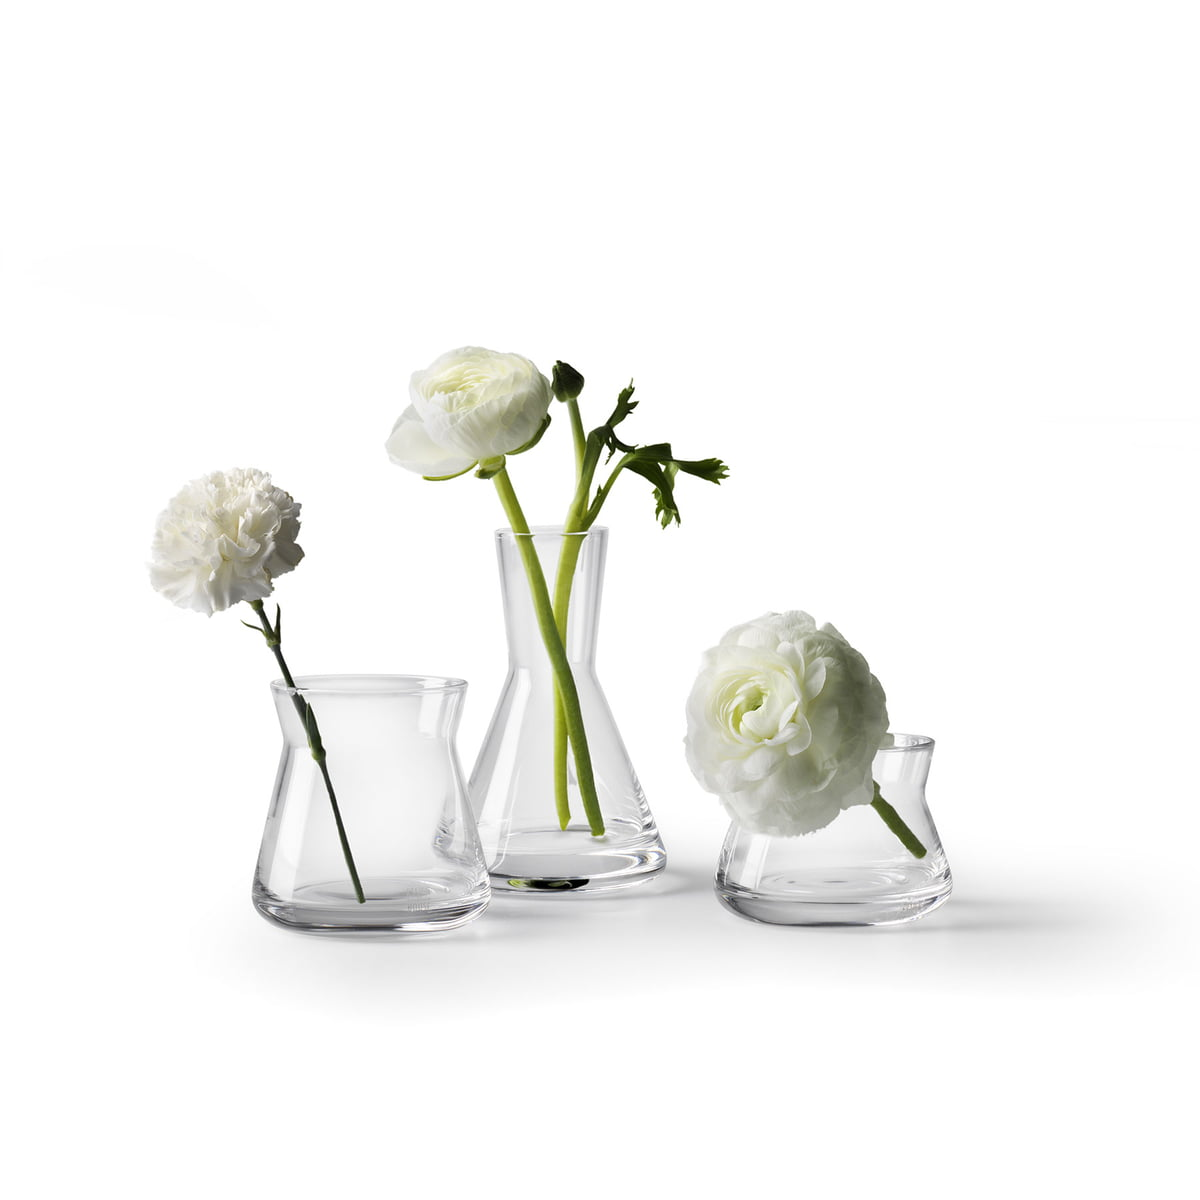 Trio vases by design house stockholm in the shop trio vases by design house stockholm reviewsmspy